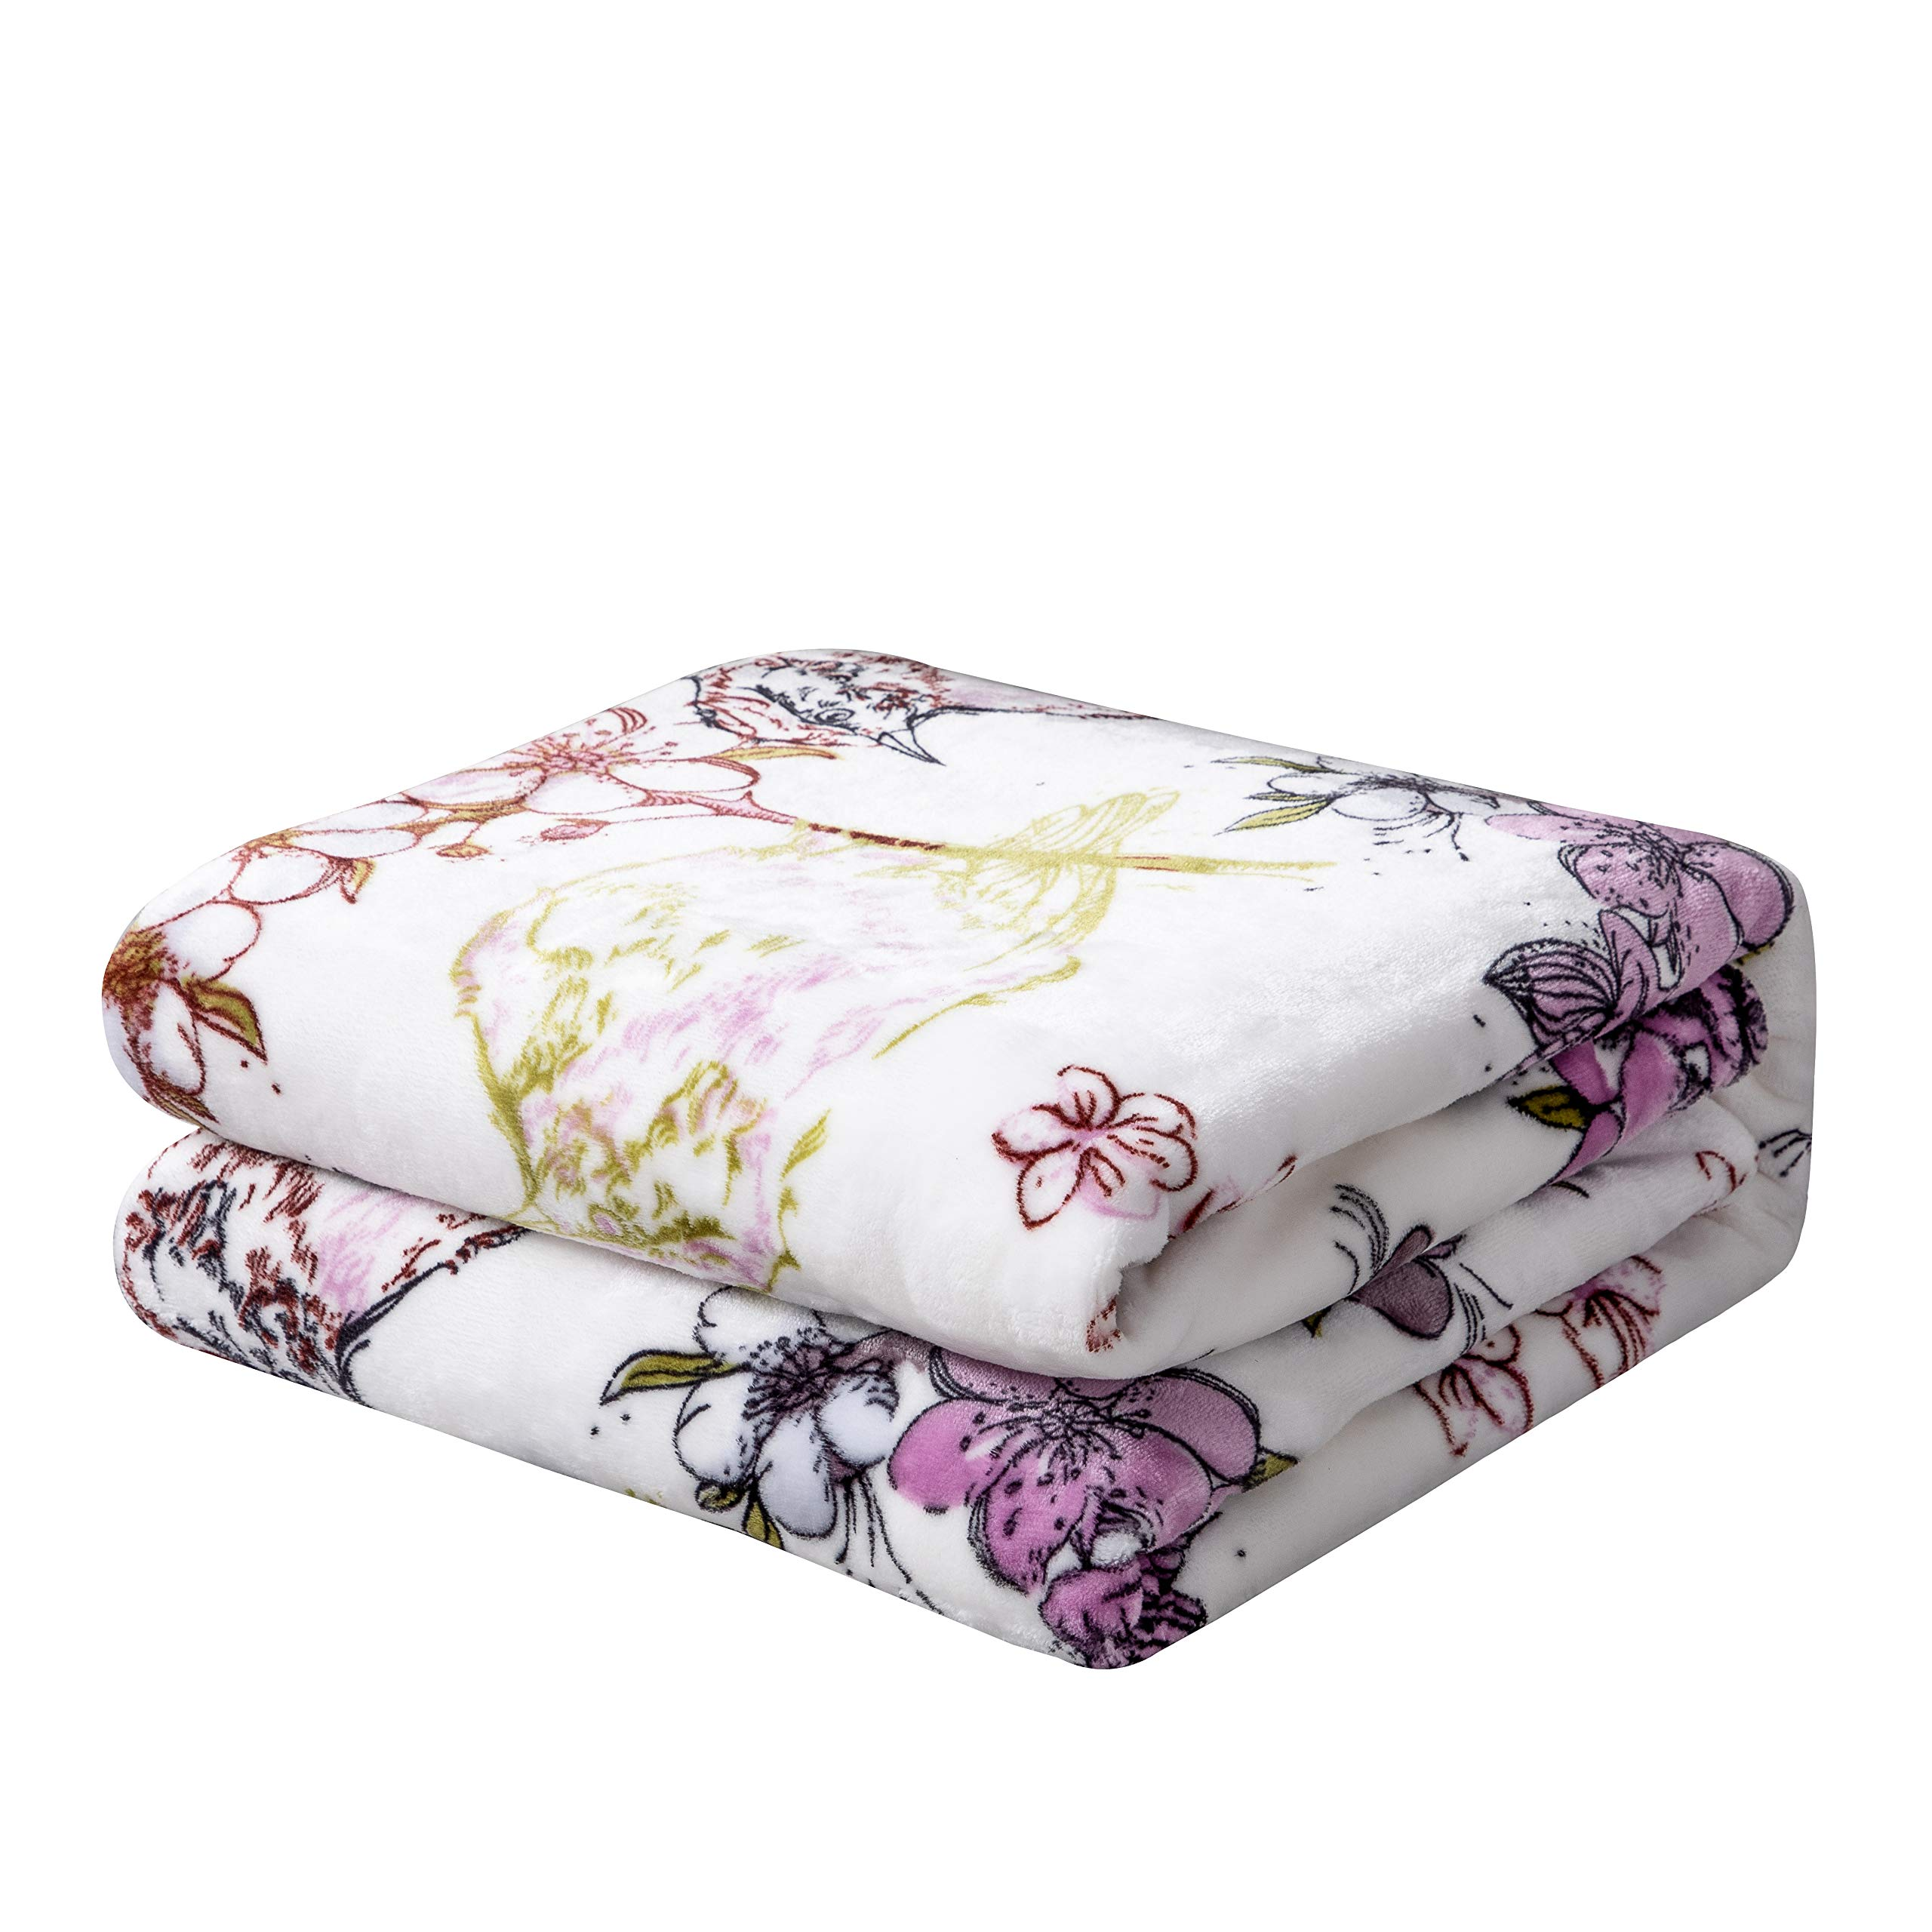 """DaDa Bedding Orchid Blossoms Soft Cozy Plush Luxe Shades of Purple Flannel Fleece Throw Blanket - Floral Leaves Solid Striped Multi Purple Lavender Print - 90"""" x 90"""""""